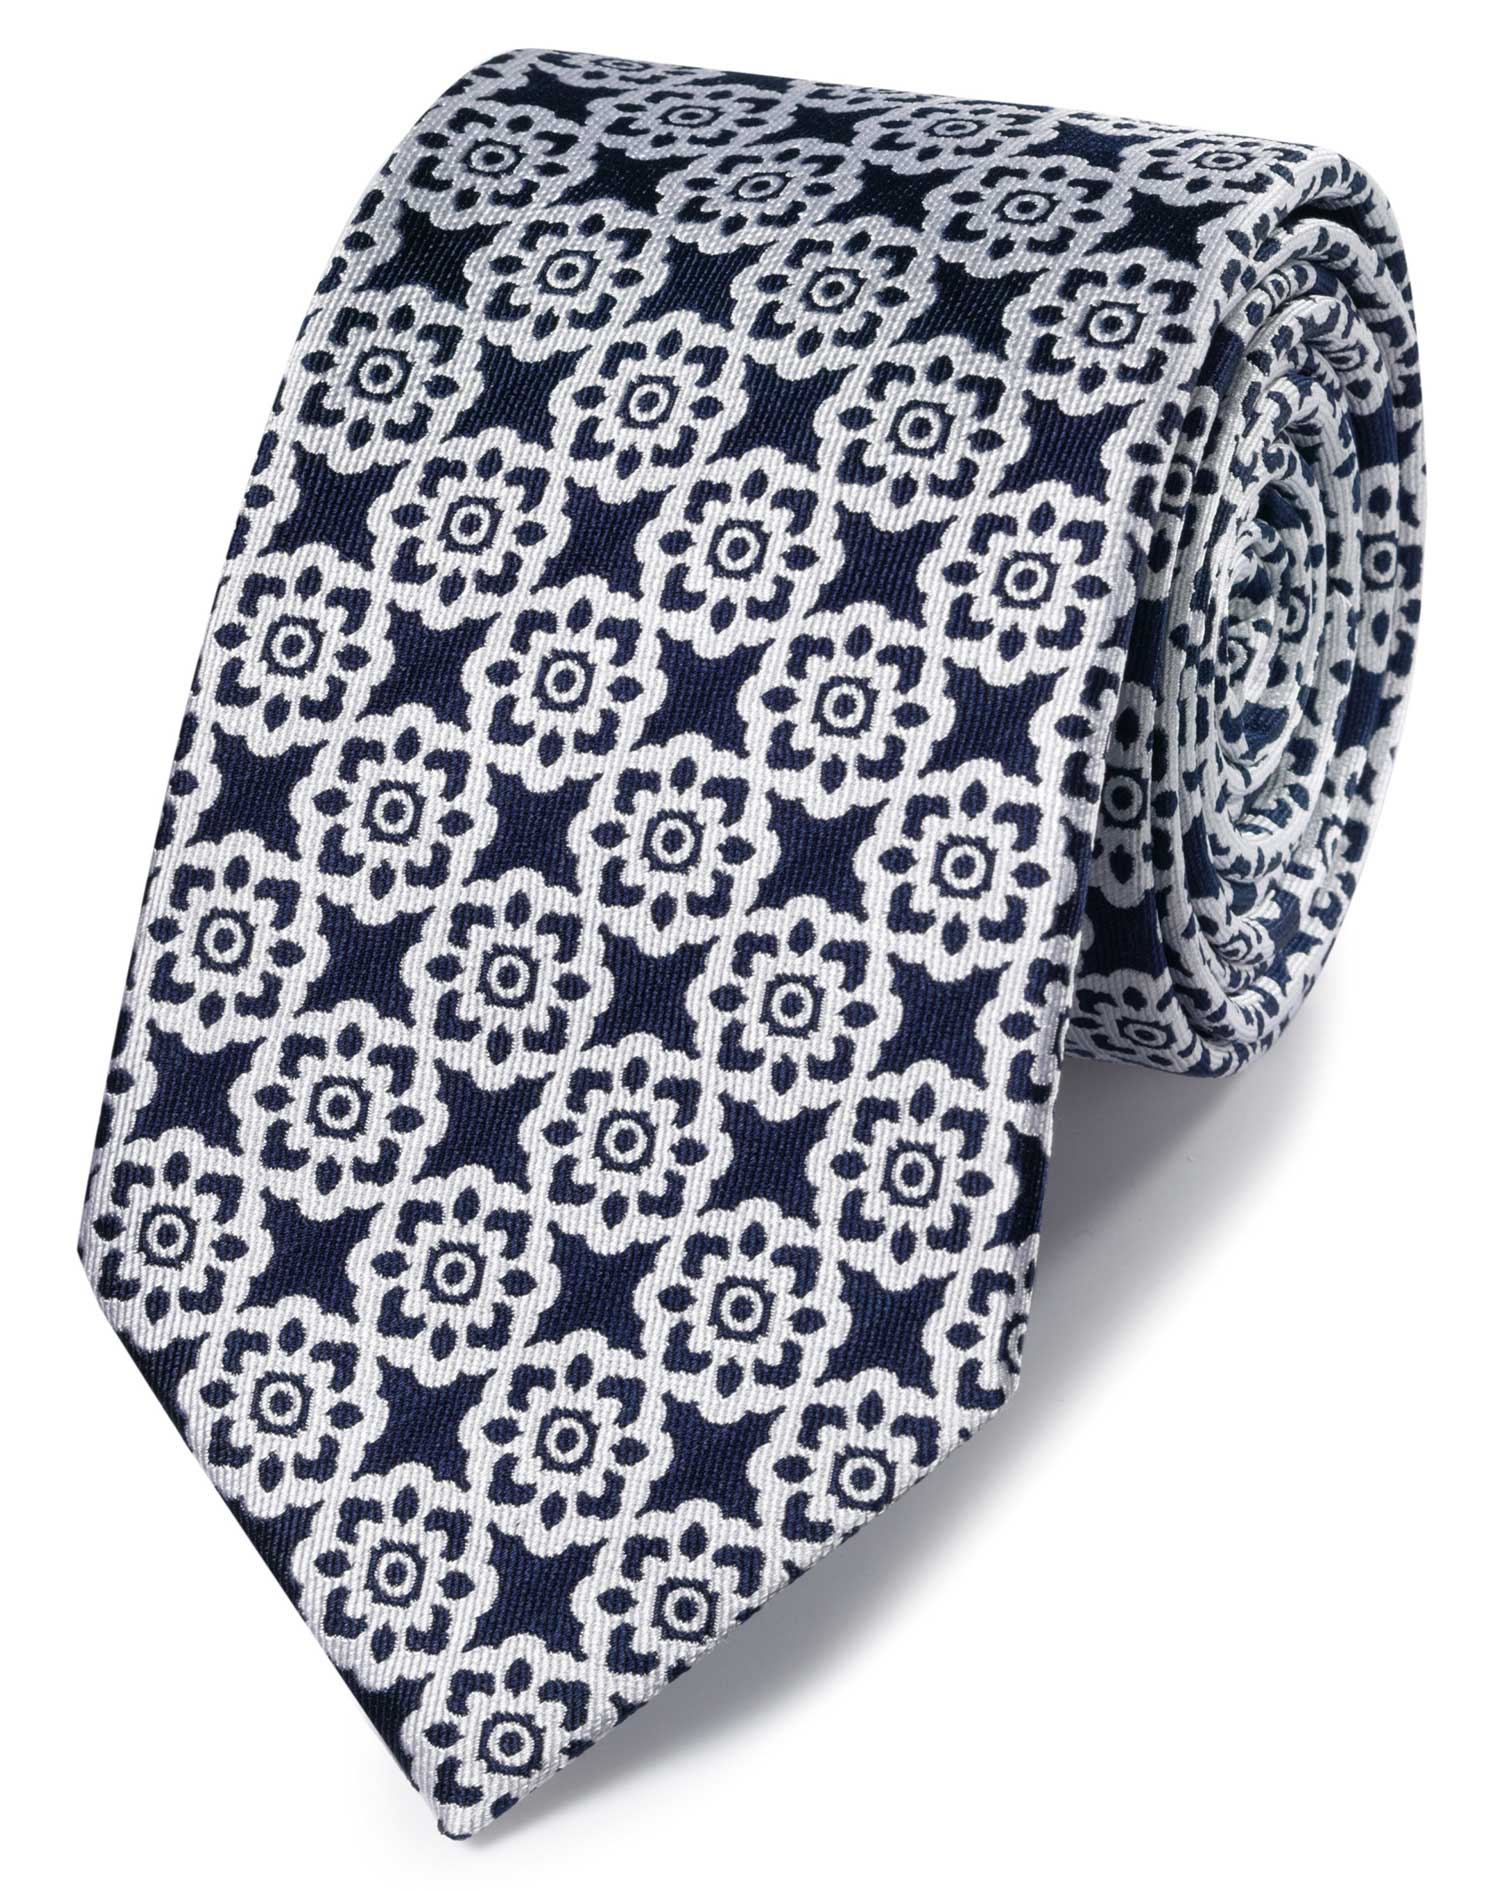 Navy and White Floral Classic Silk Tie Size OSFA by Charles Tyrwhitt